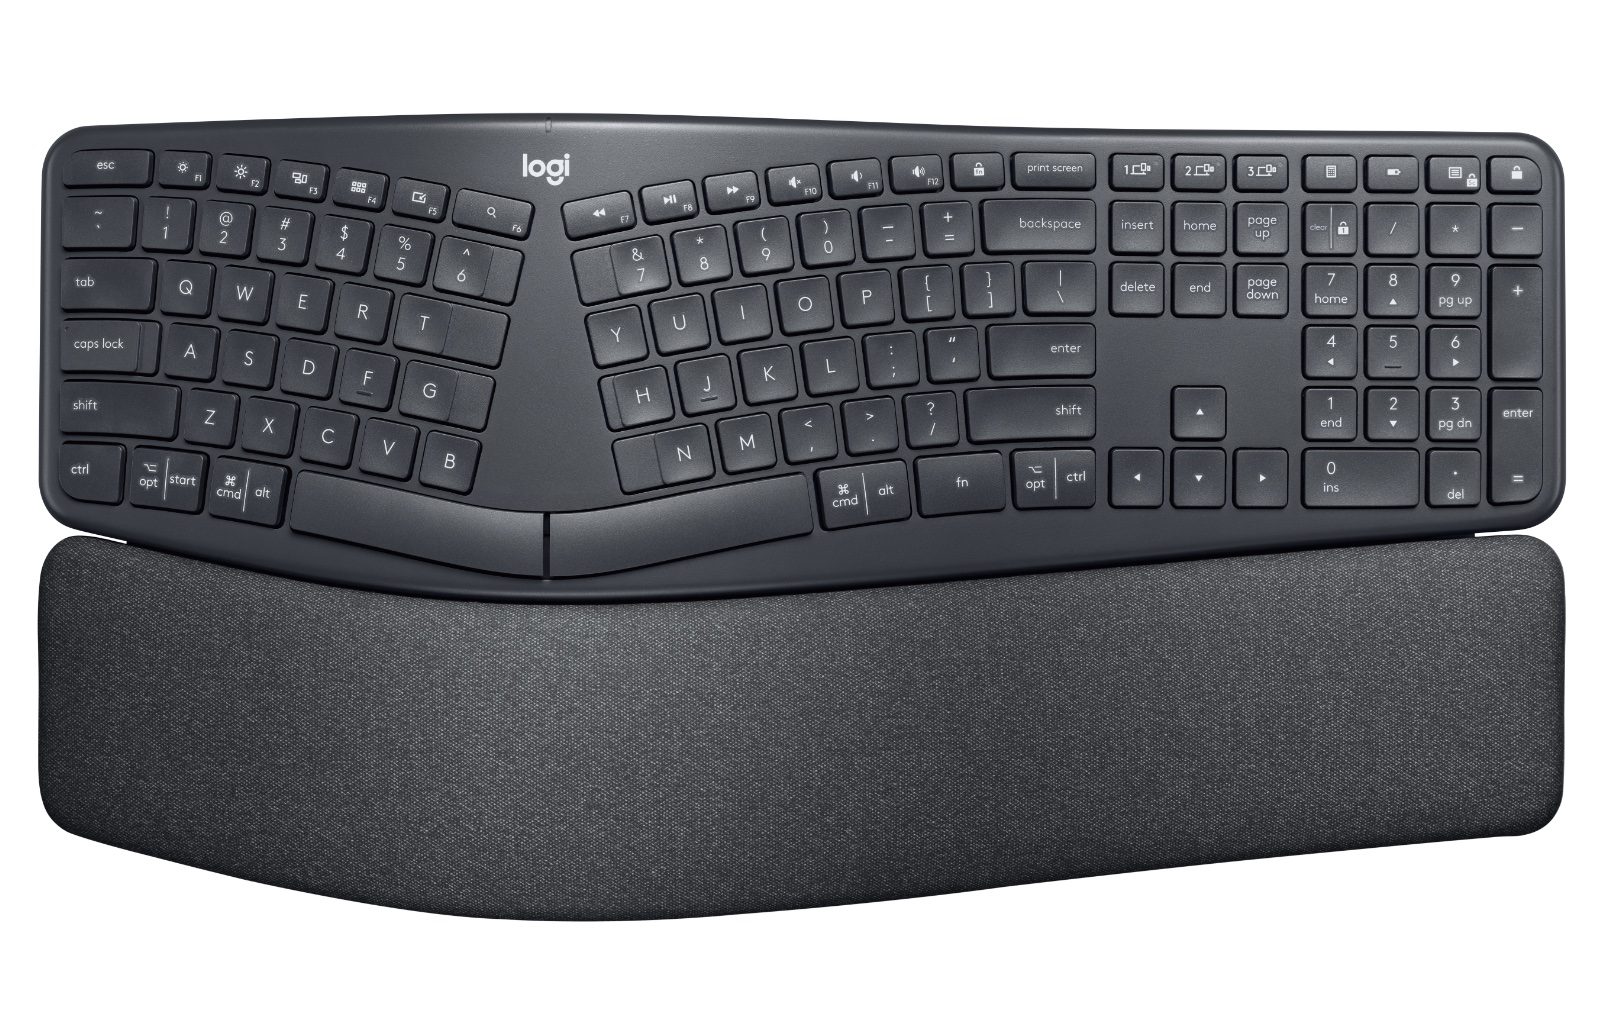 You can see how much to the size the wrist rest adds on. (Image courtesy of Logitech)